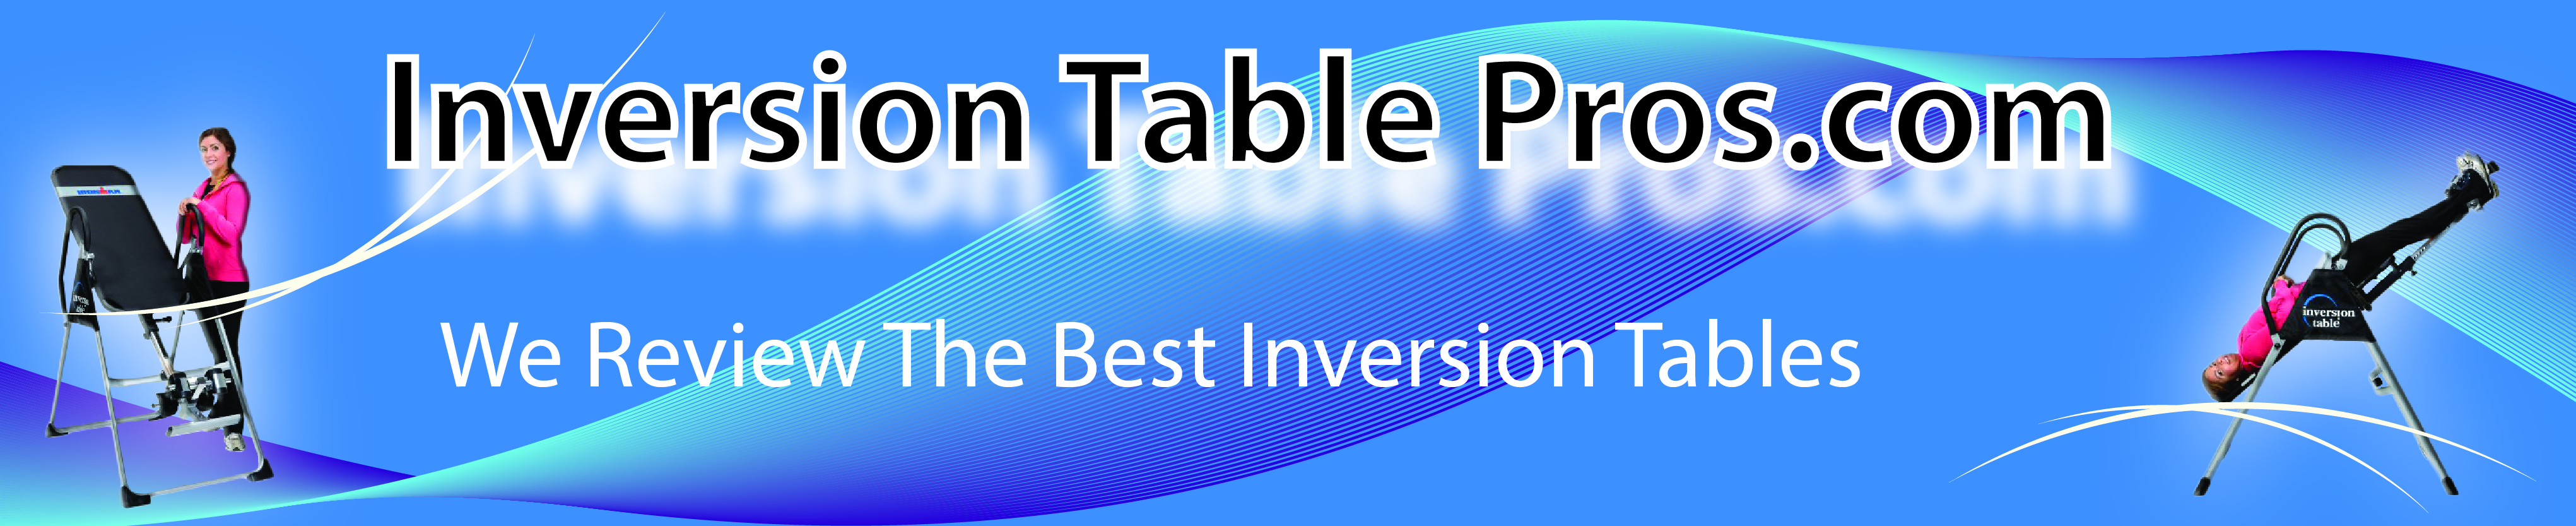 Inversion Table Pros.com